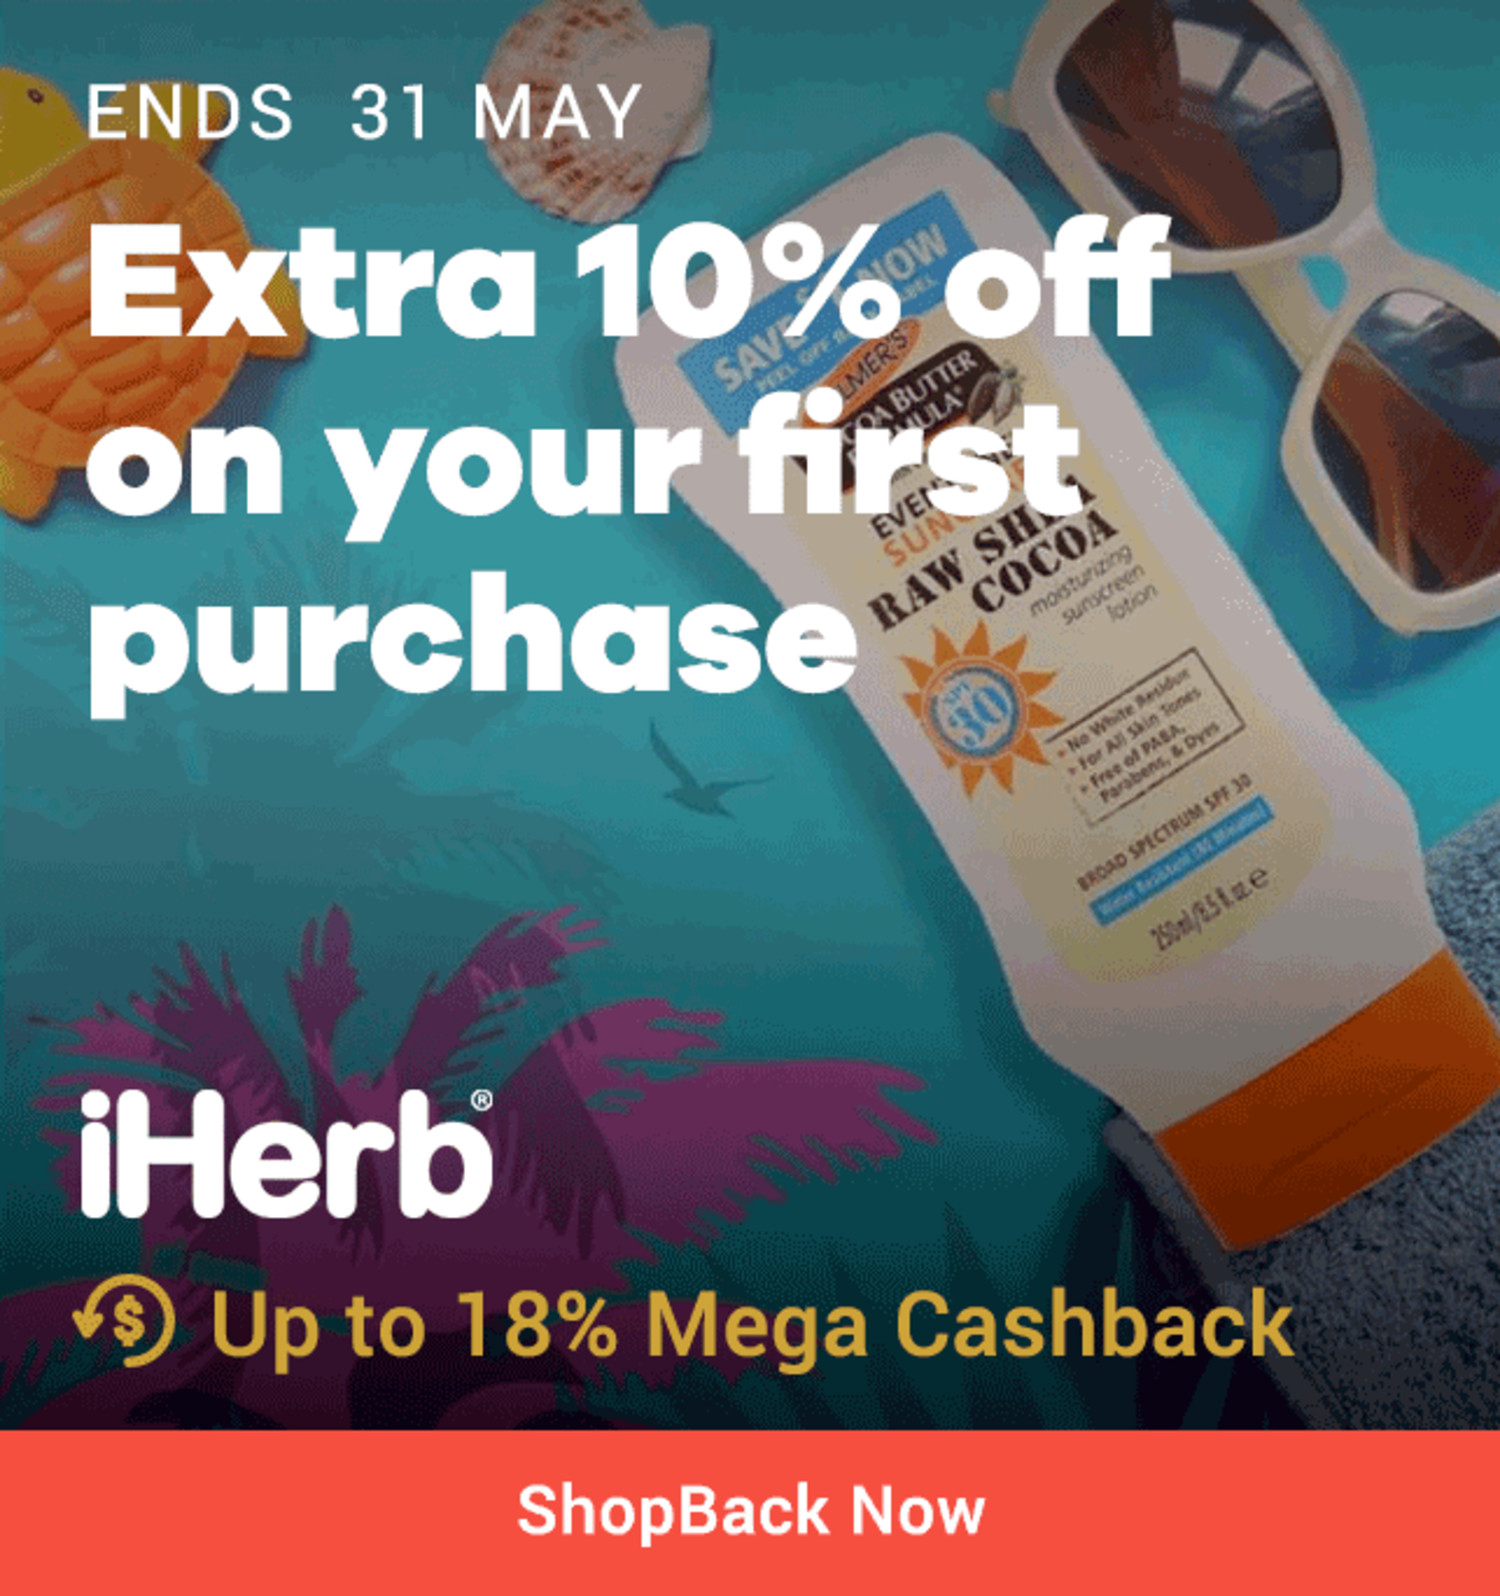 Ends 31 May | iHerb Extra 10% off your first purchase + 18% Mega Cashback